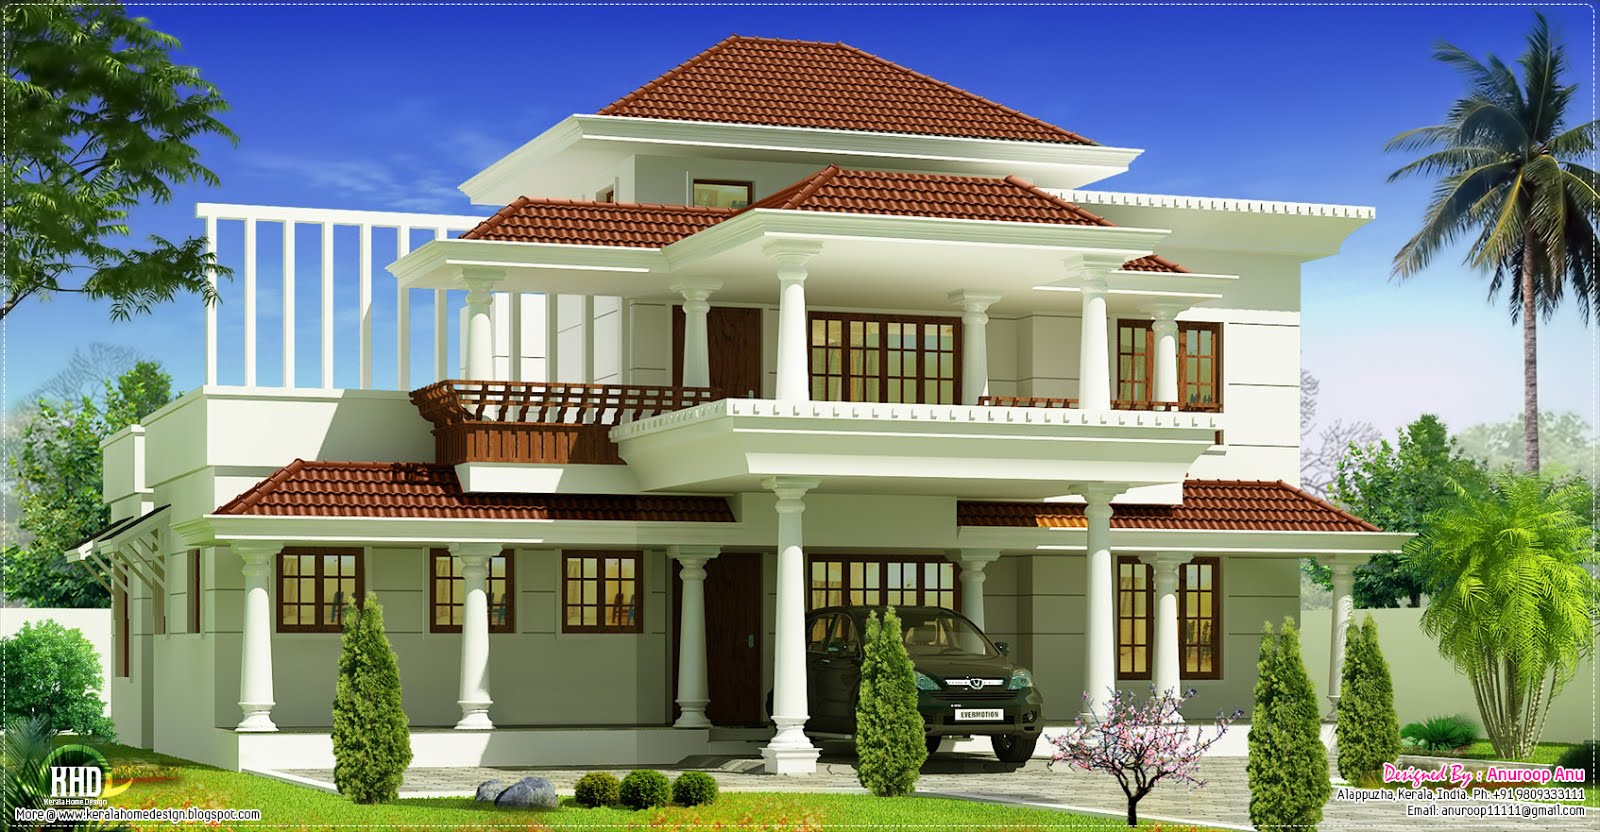 Home Design For Kerala Kerala Home Design Architecture